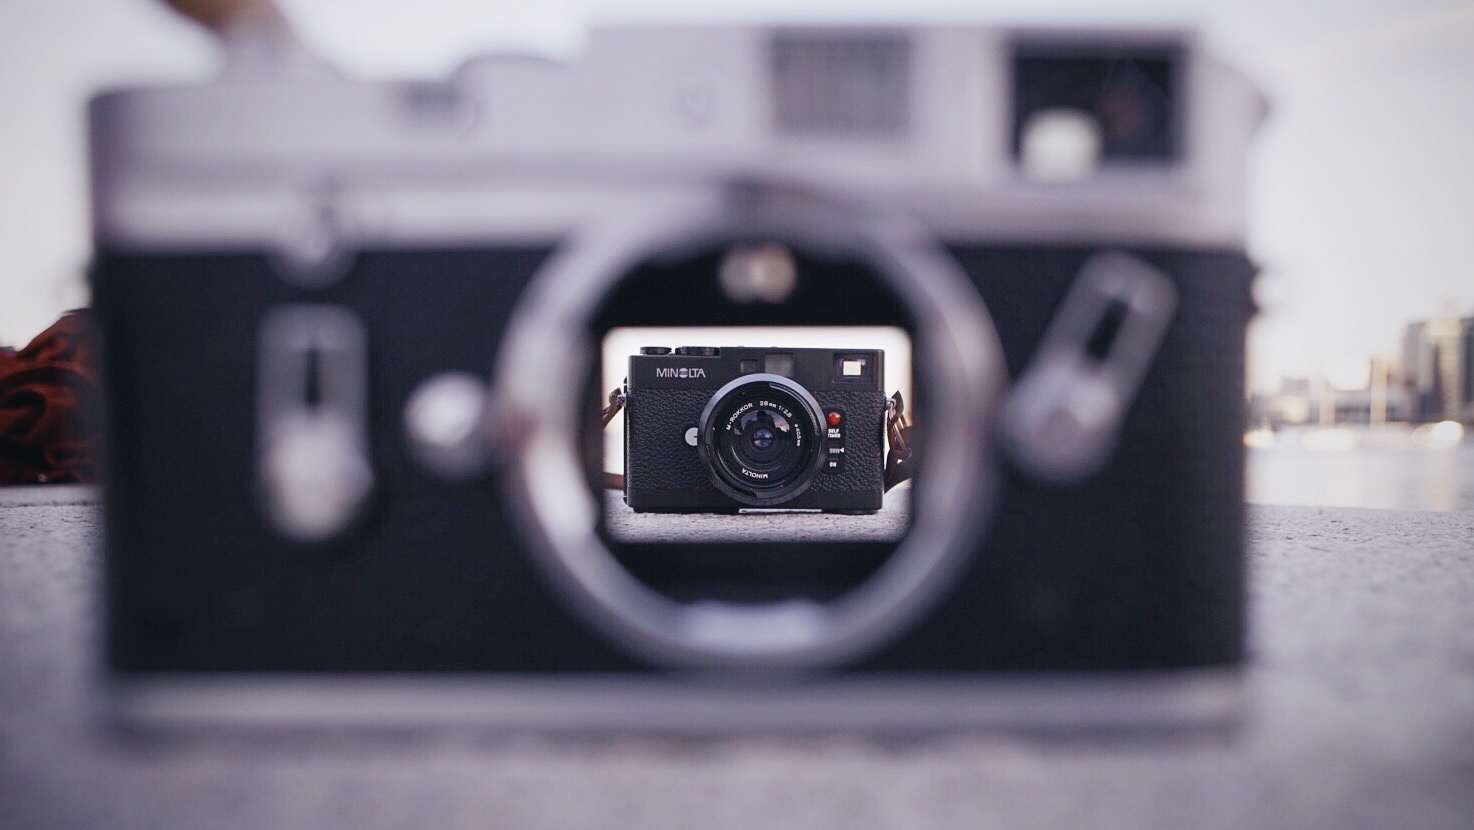 Why I Choose the Minolta CLE Over Any Leica M - Casual Photophile